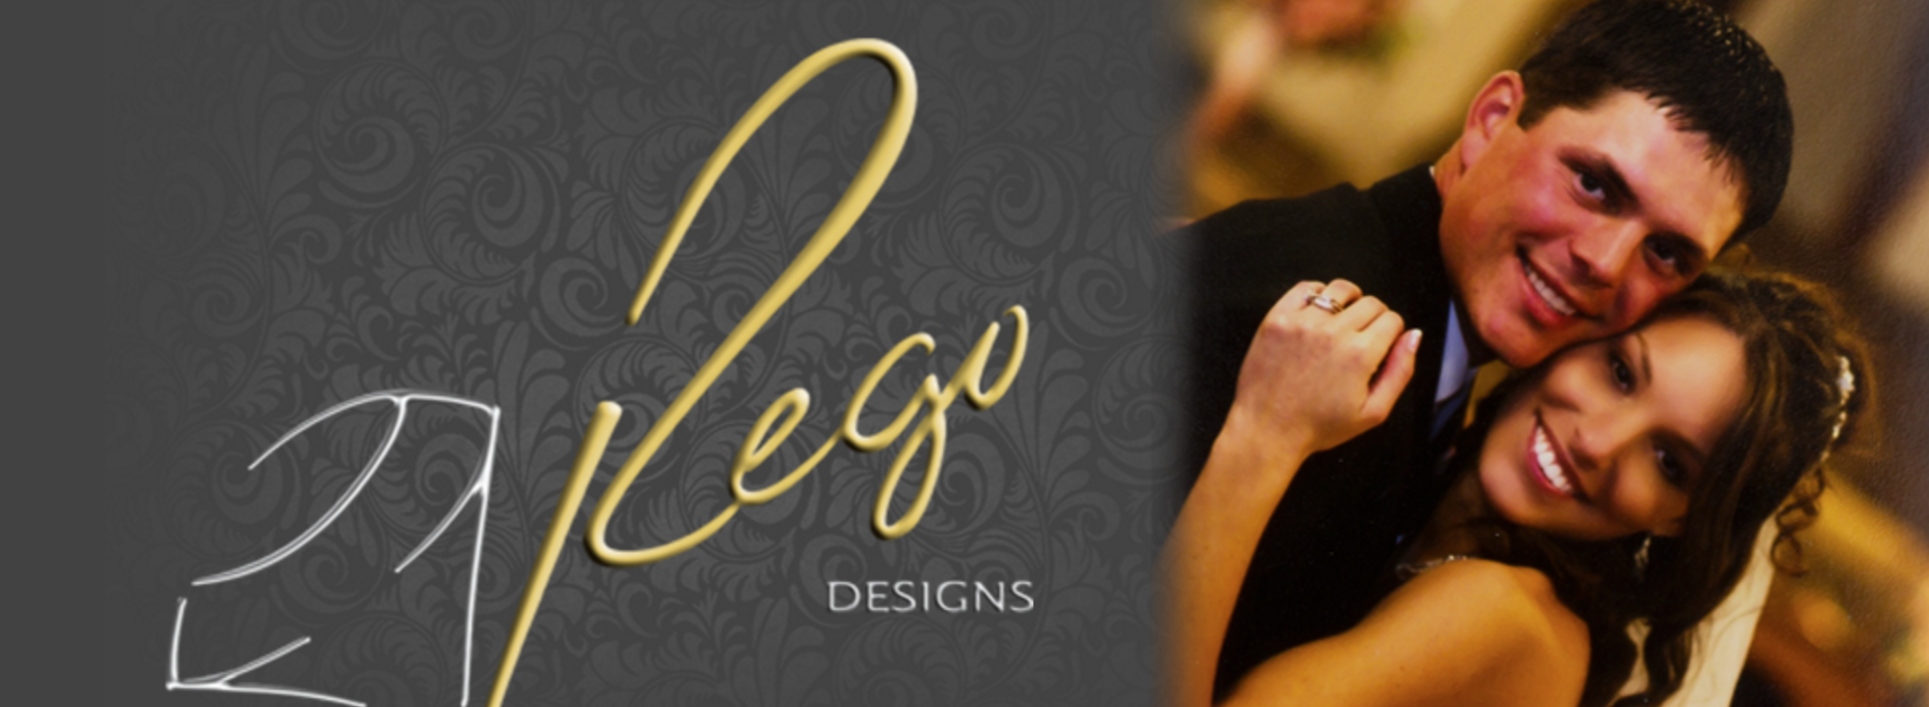 Precision Jewelers Rego Designs